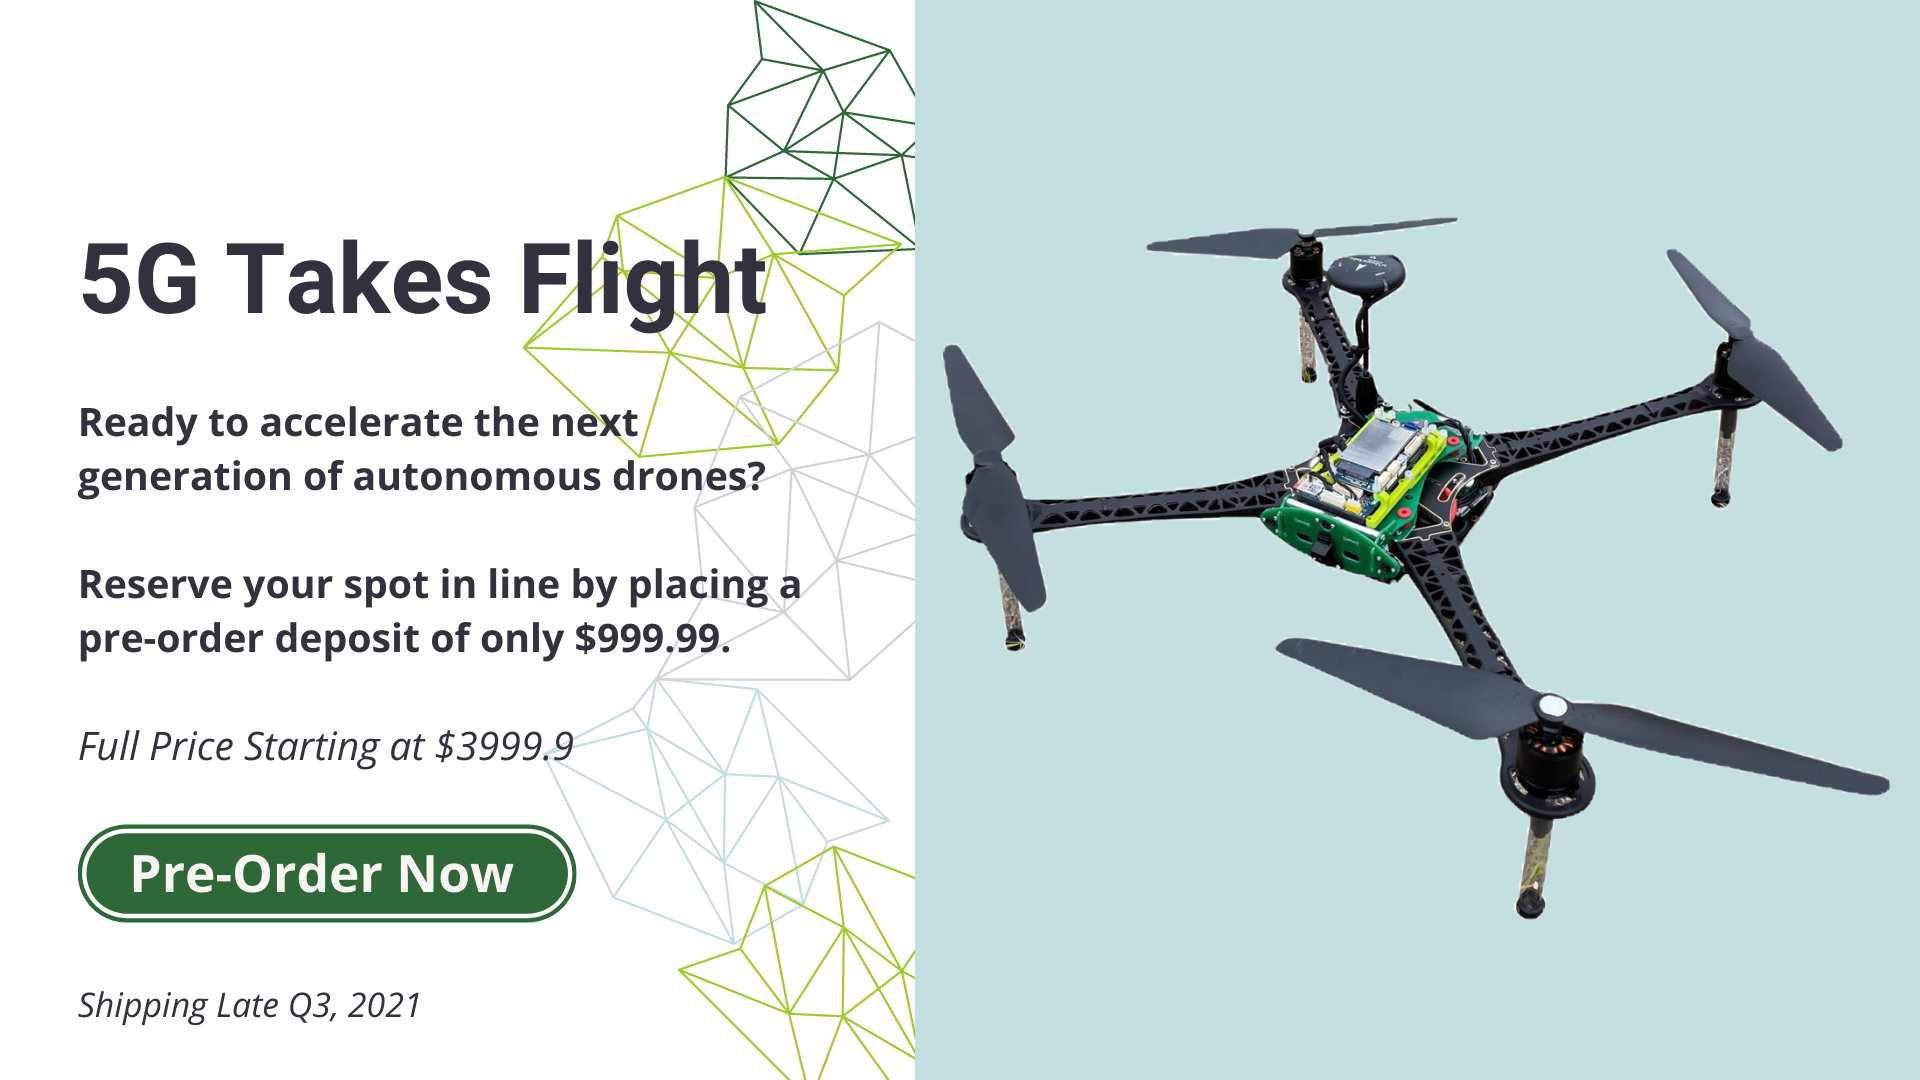 5G Takes Flight. ready to accelerate the next generation of autonomous drones? Reserve your spot in line by placing a pre-order deposit of only $999.99 Full price starting at $3999.99 Pre-order now. Shipping late Q3, 2021